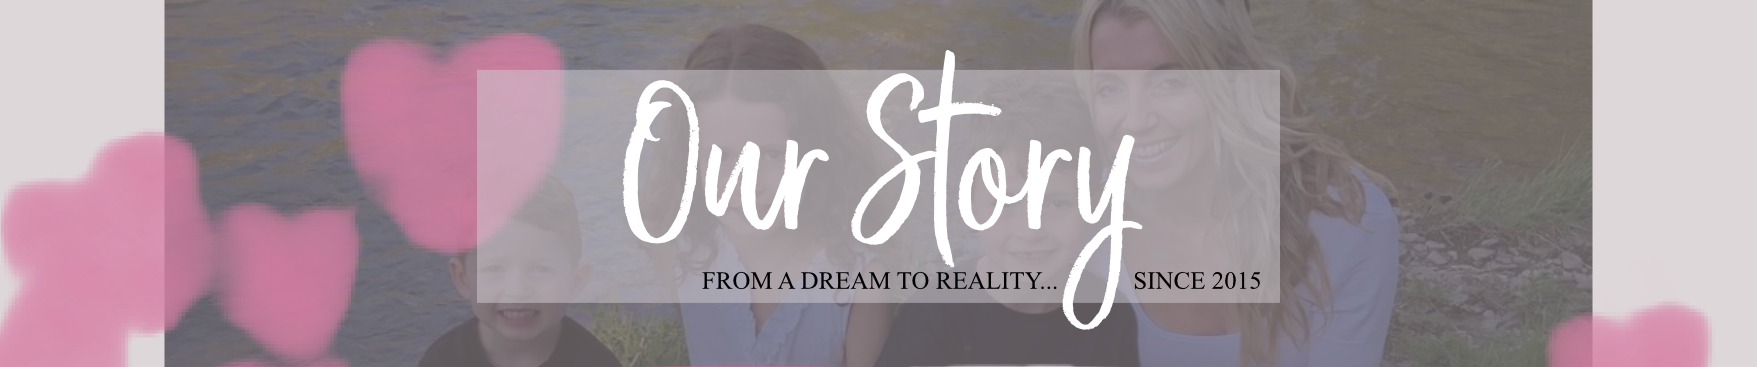 PAGE Title - OUR STORY pic.png